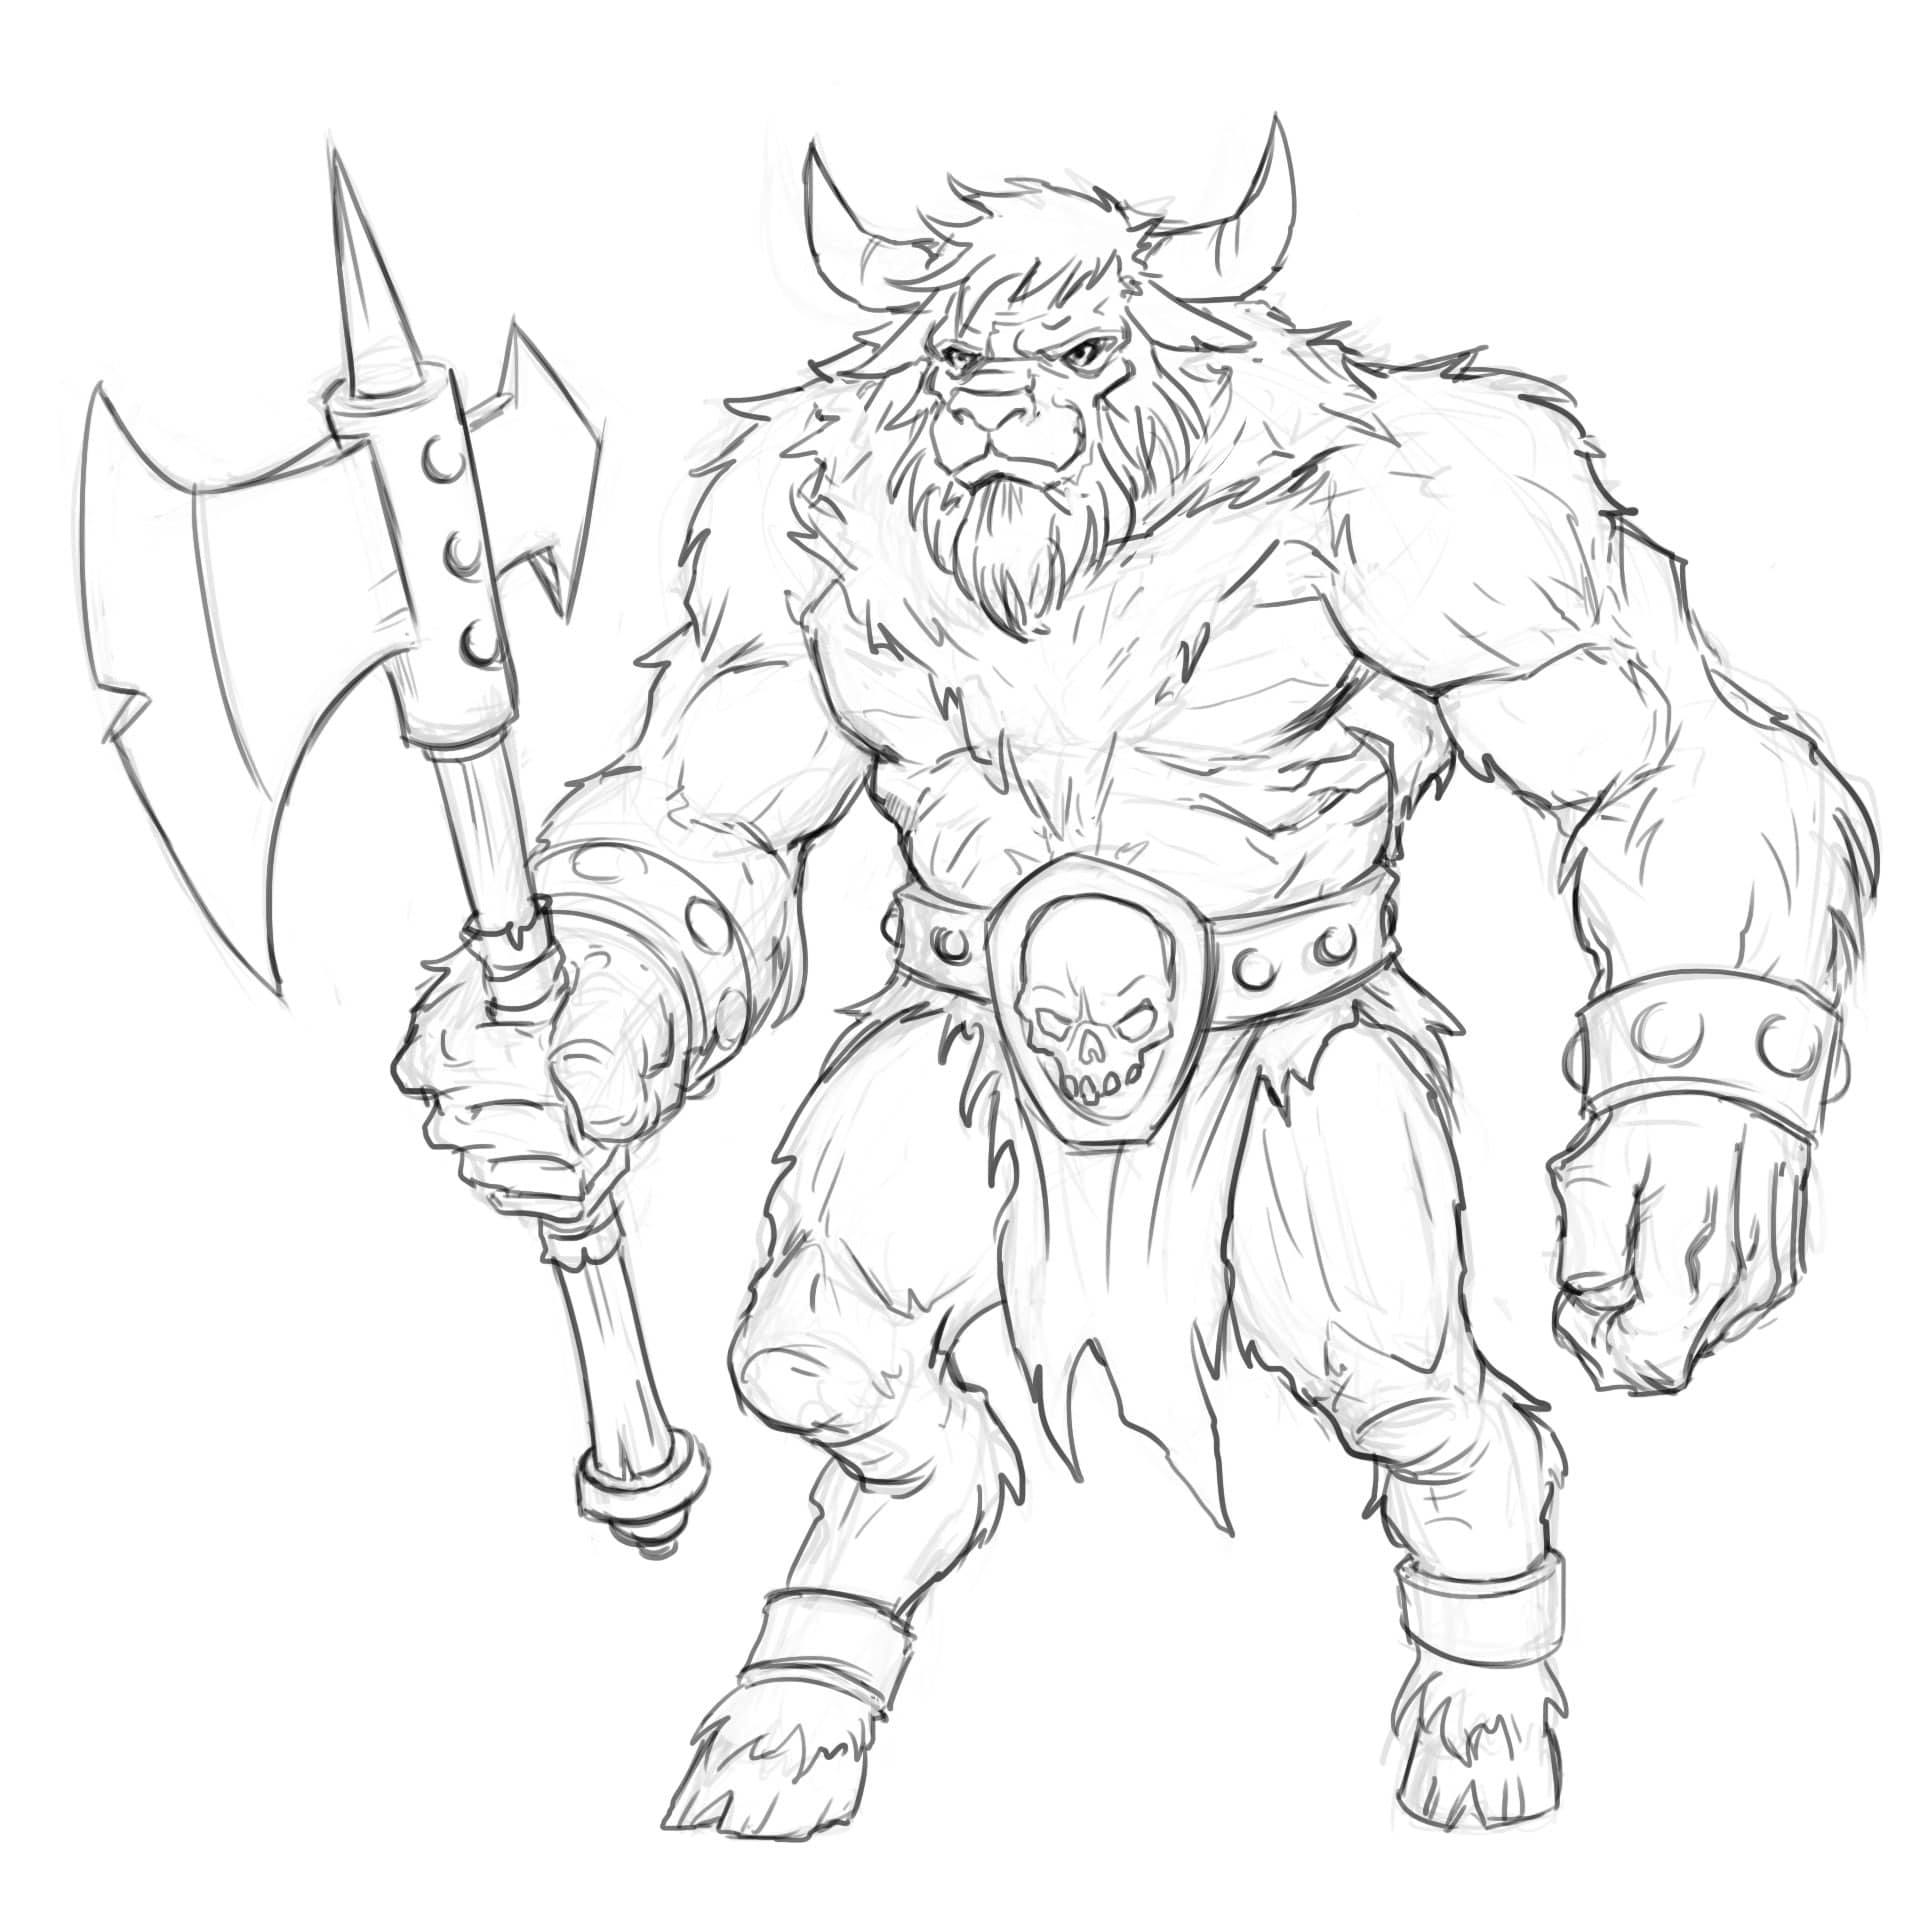 LEARN TO DRAW A MINOTAUR IN 7 EASY STEPS